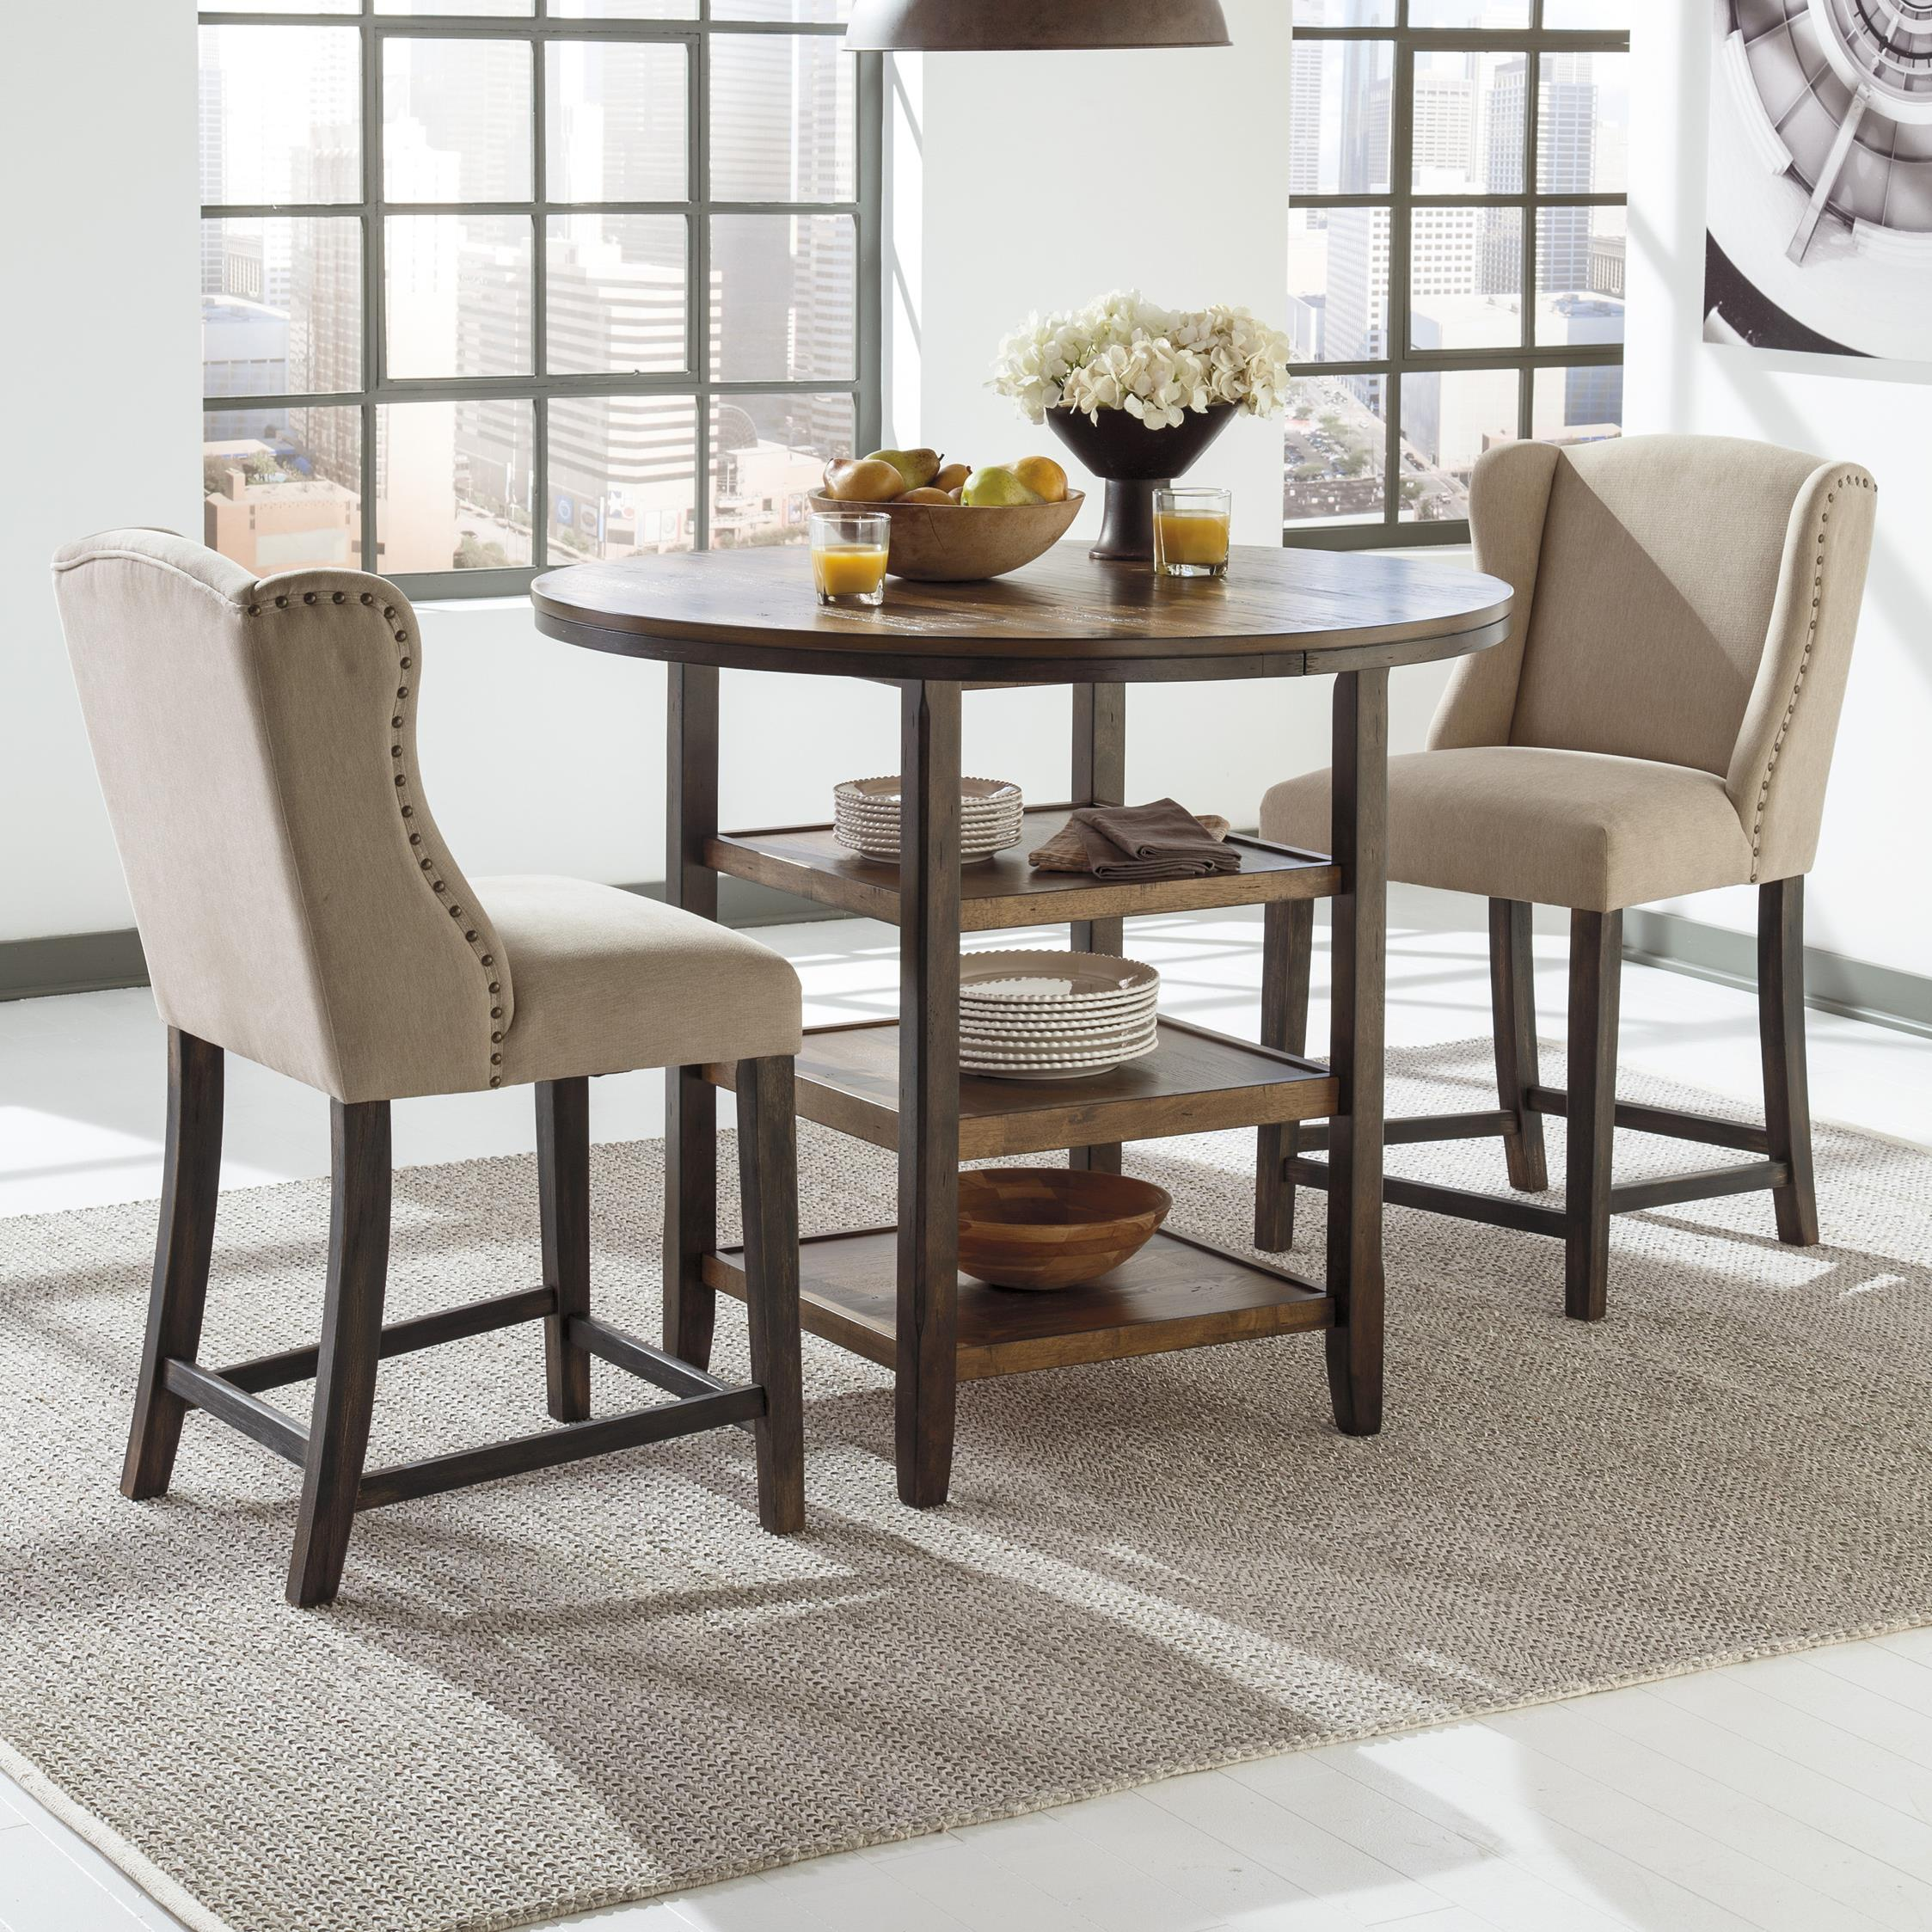 3 Piece Counter Table Set